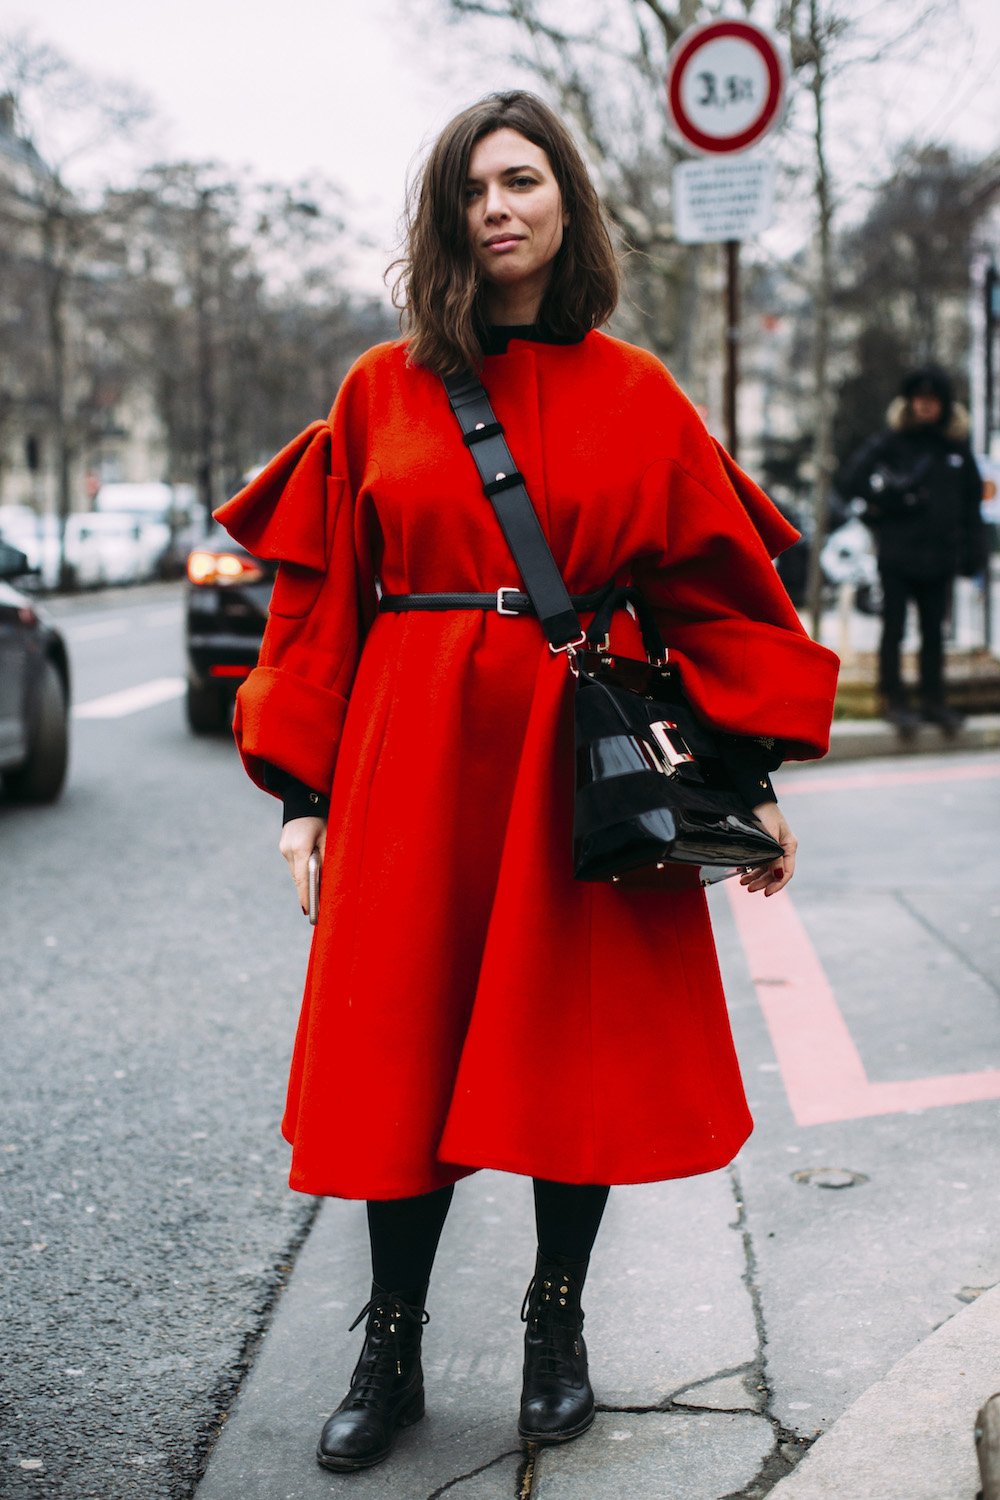 70f72a36219 How to Style the 80s Fashion Trend Without Looking Totally Dated ...